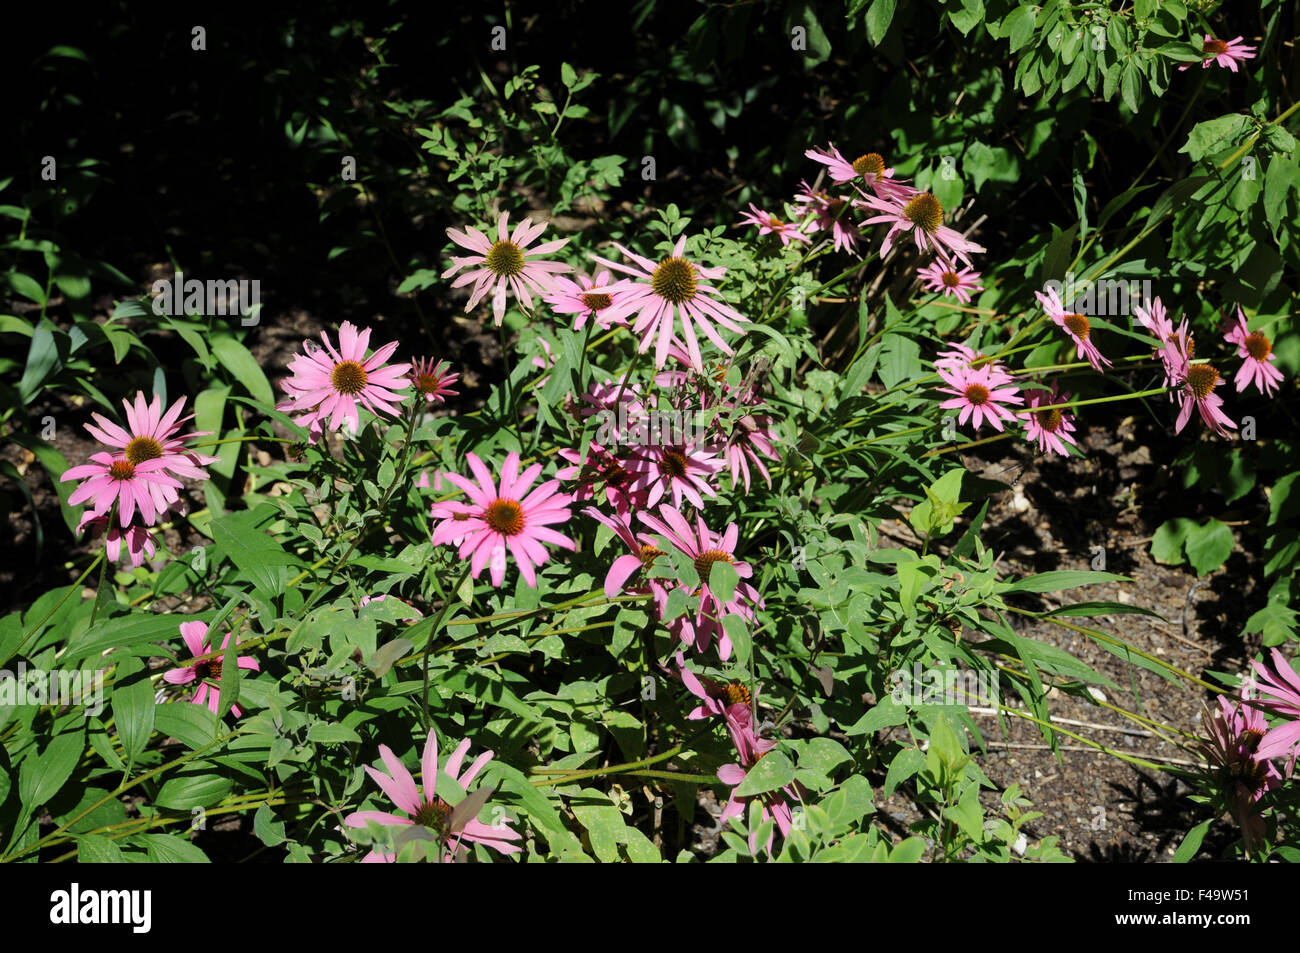 Tennessee coneflower - Stock Image